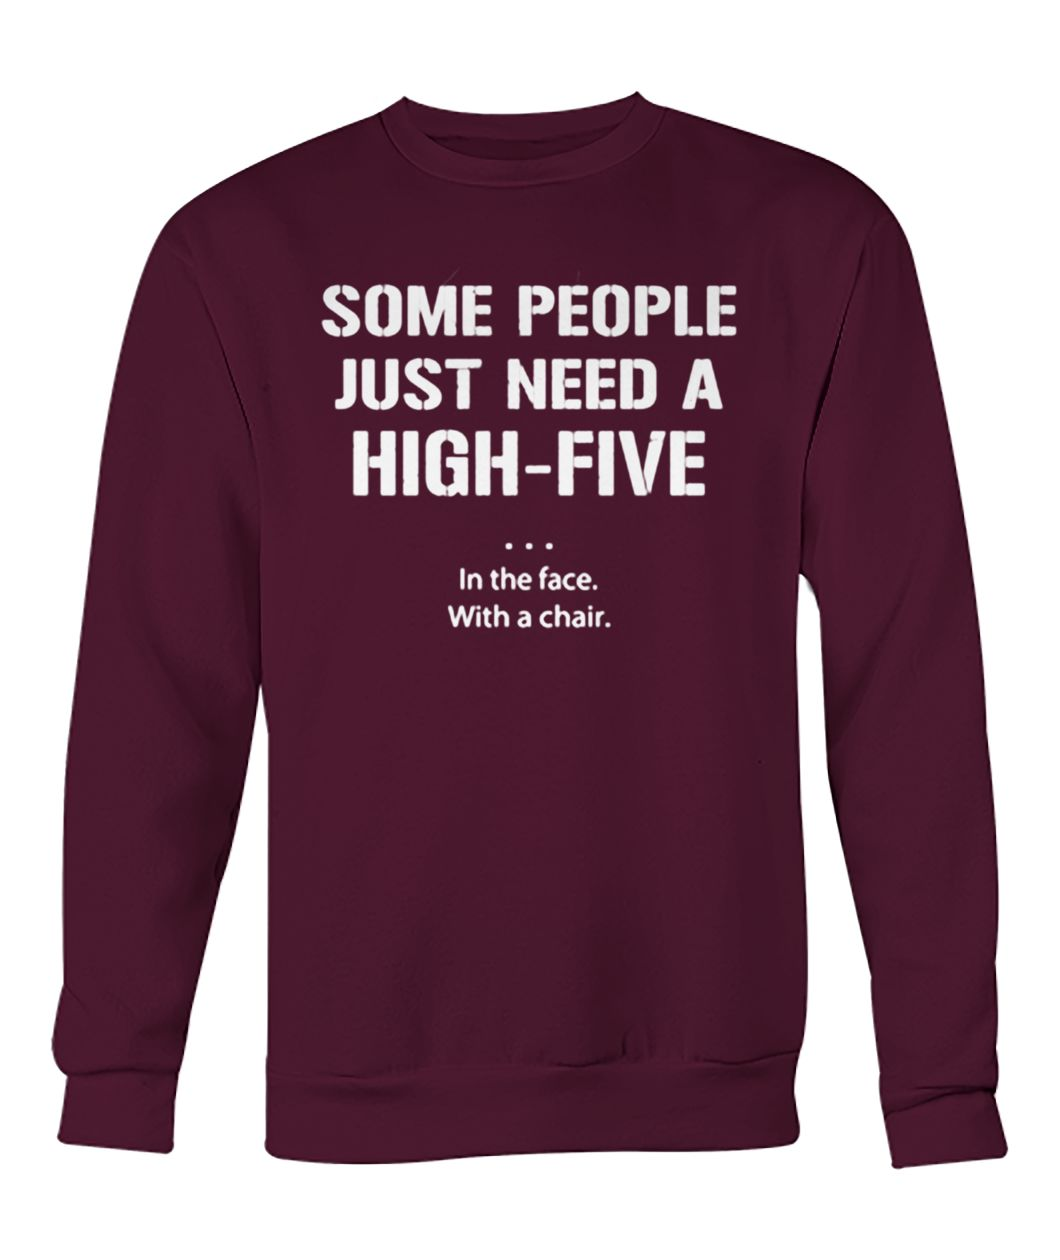 Some people just need a high five in the face with a chair crew neck sweatshirt